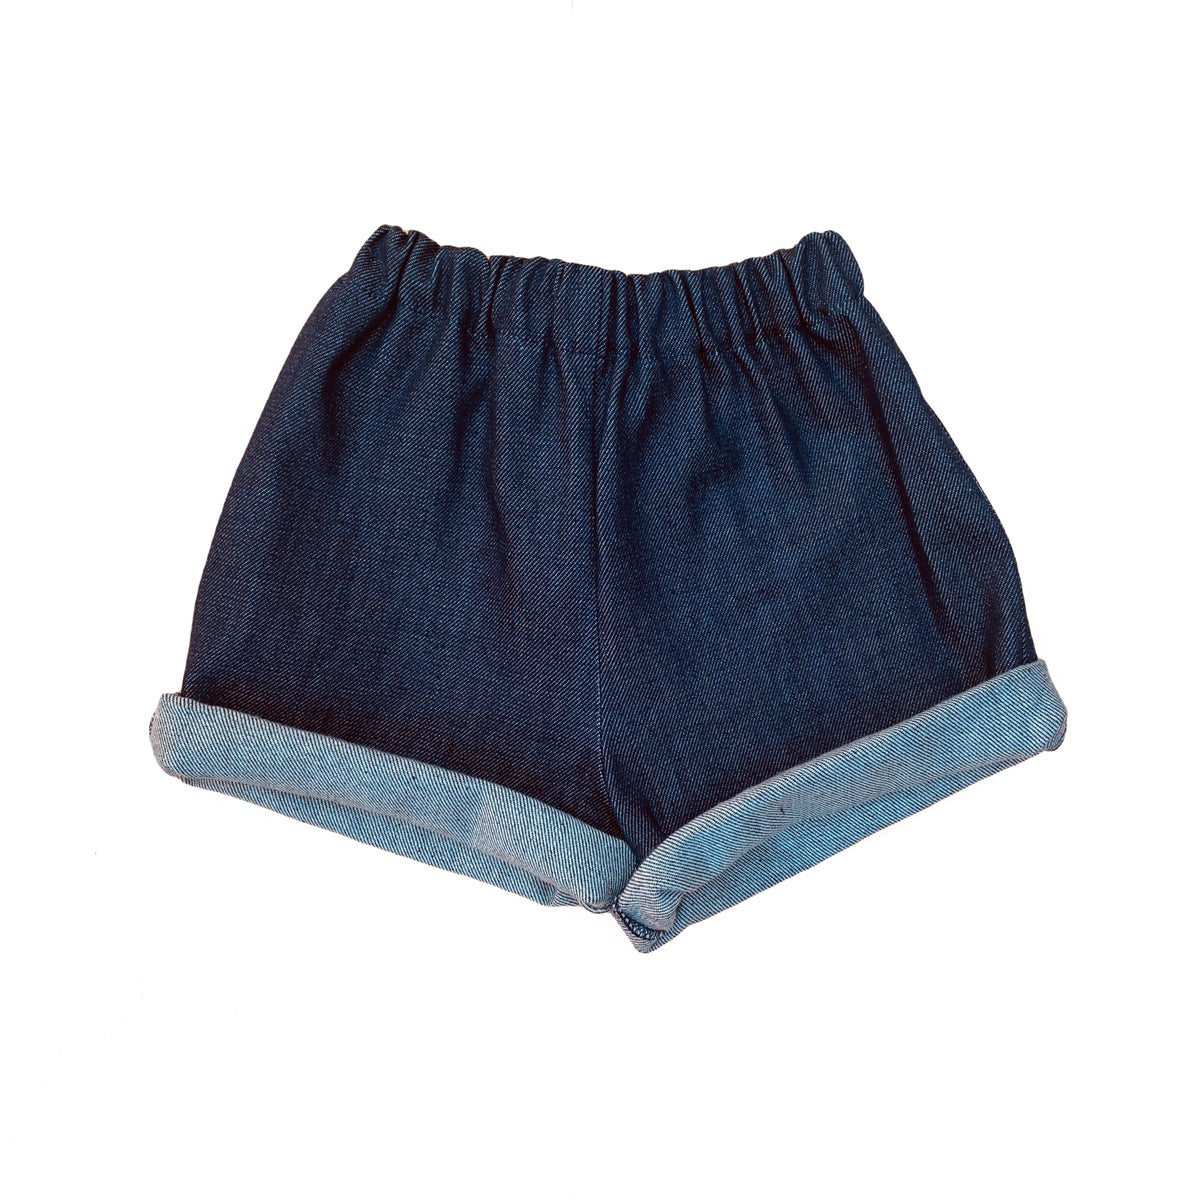 Image of Pippins denim shorts Indigo